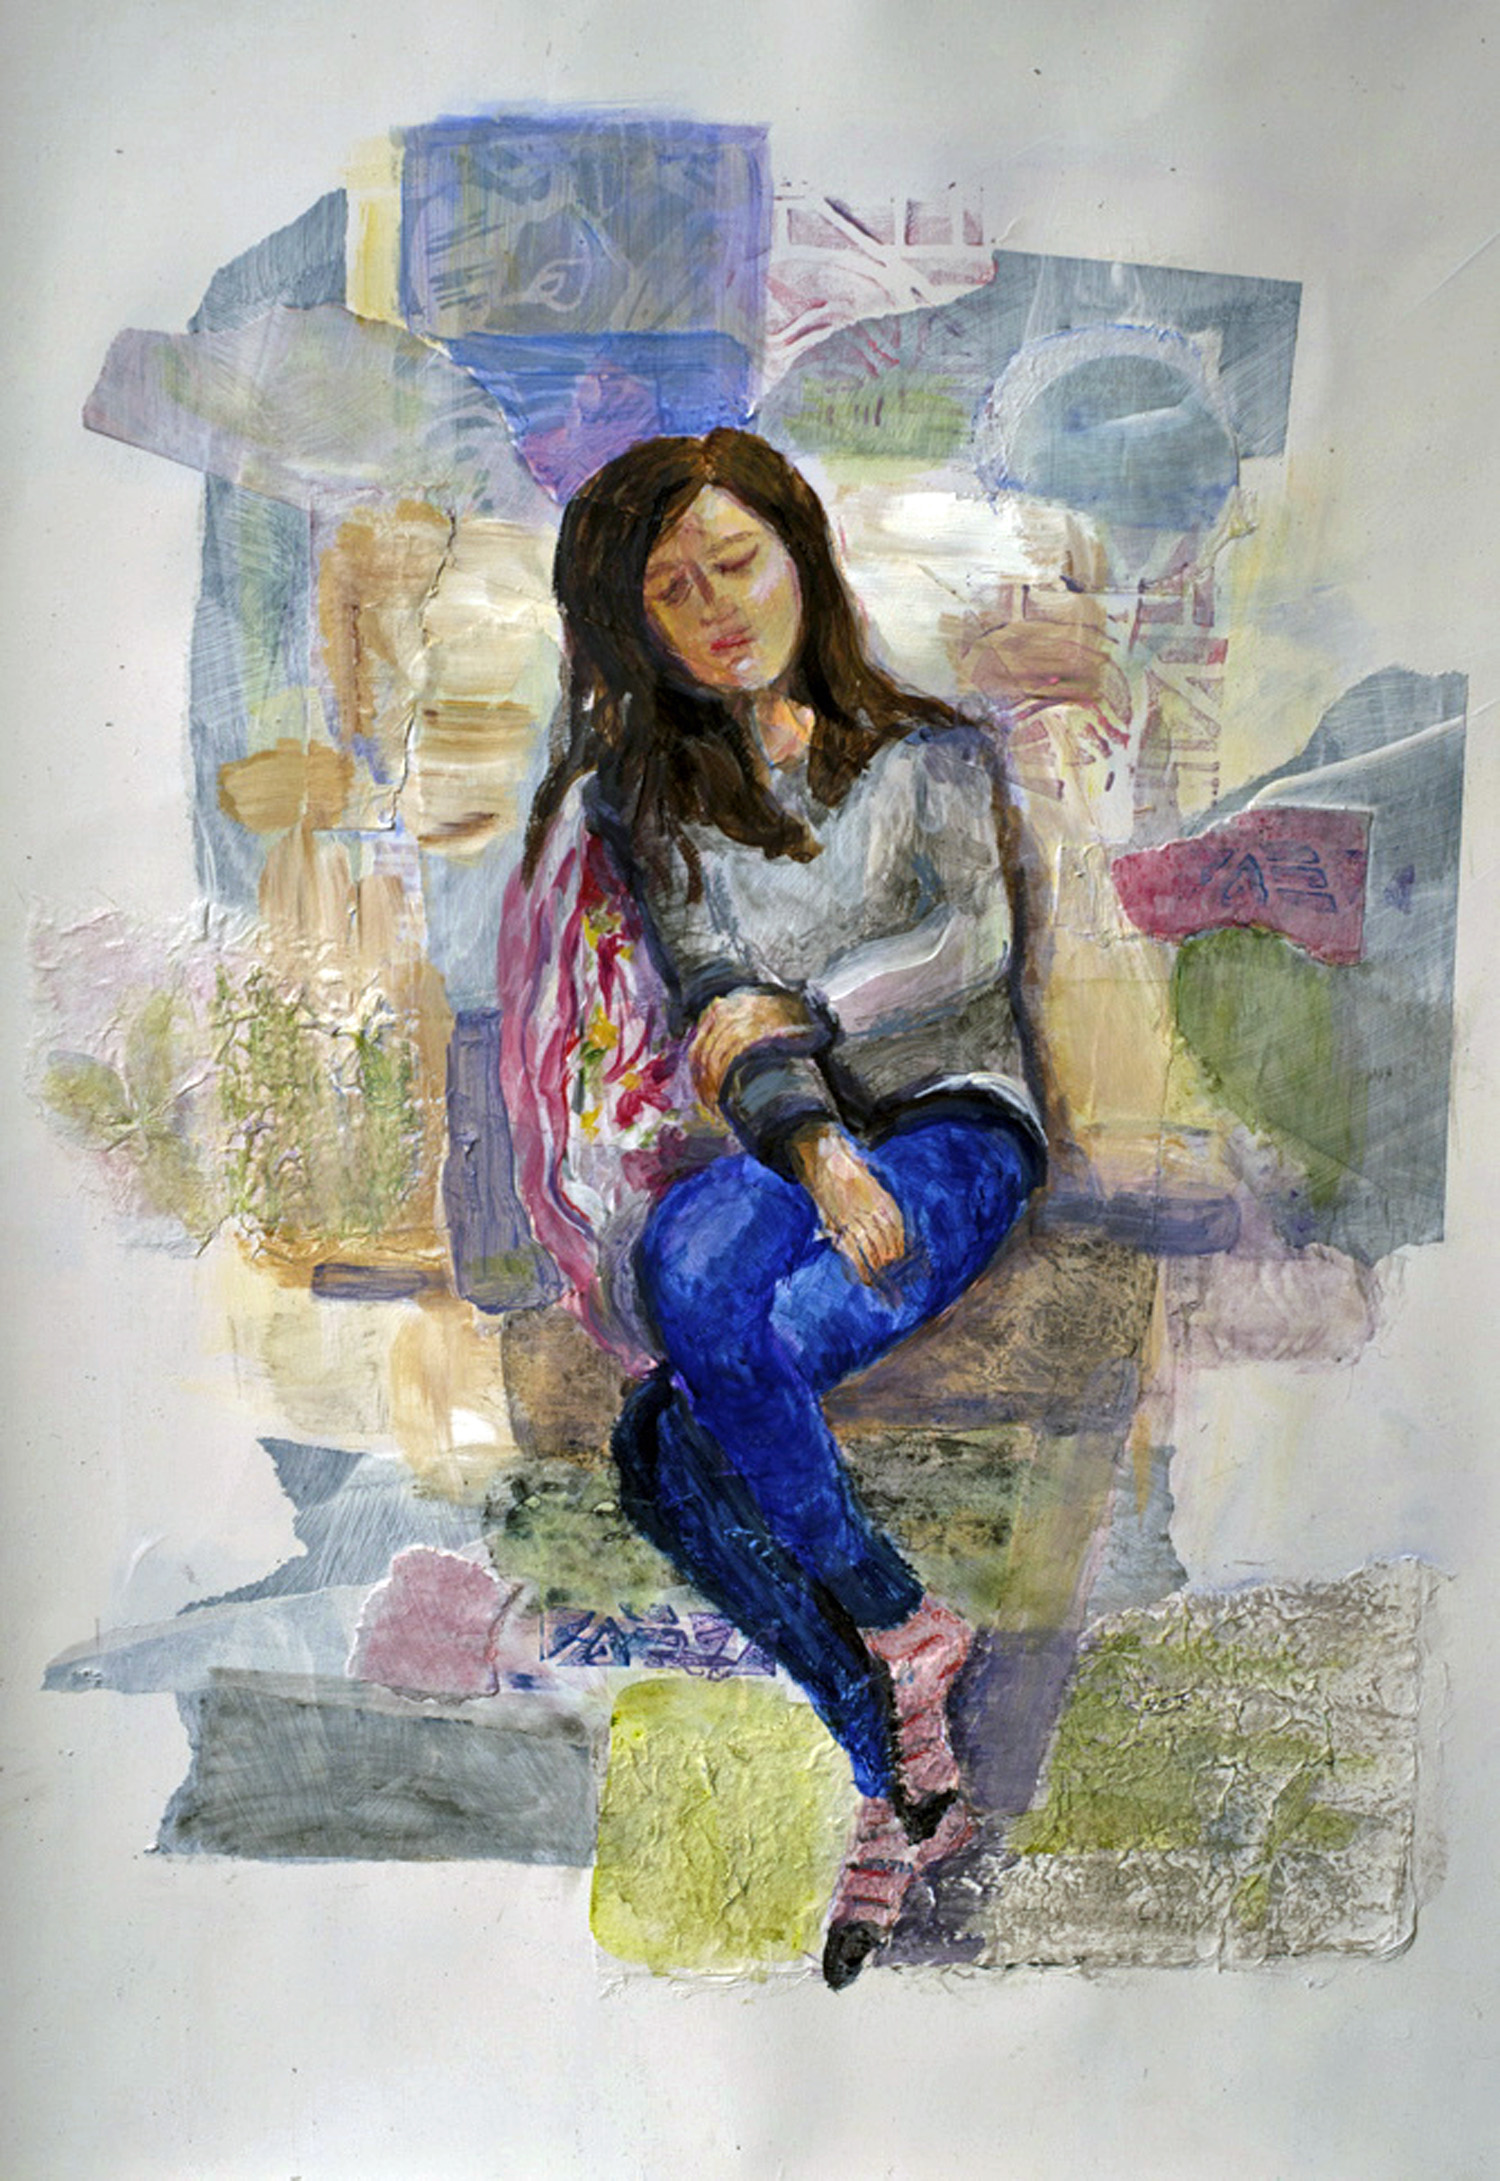 Girl in Repose  Mixed media on paper, 22x30. Private collection